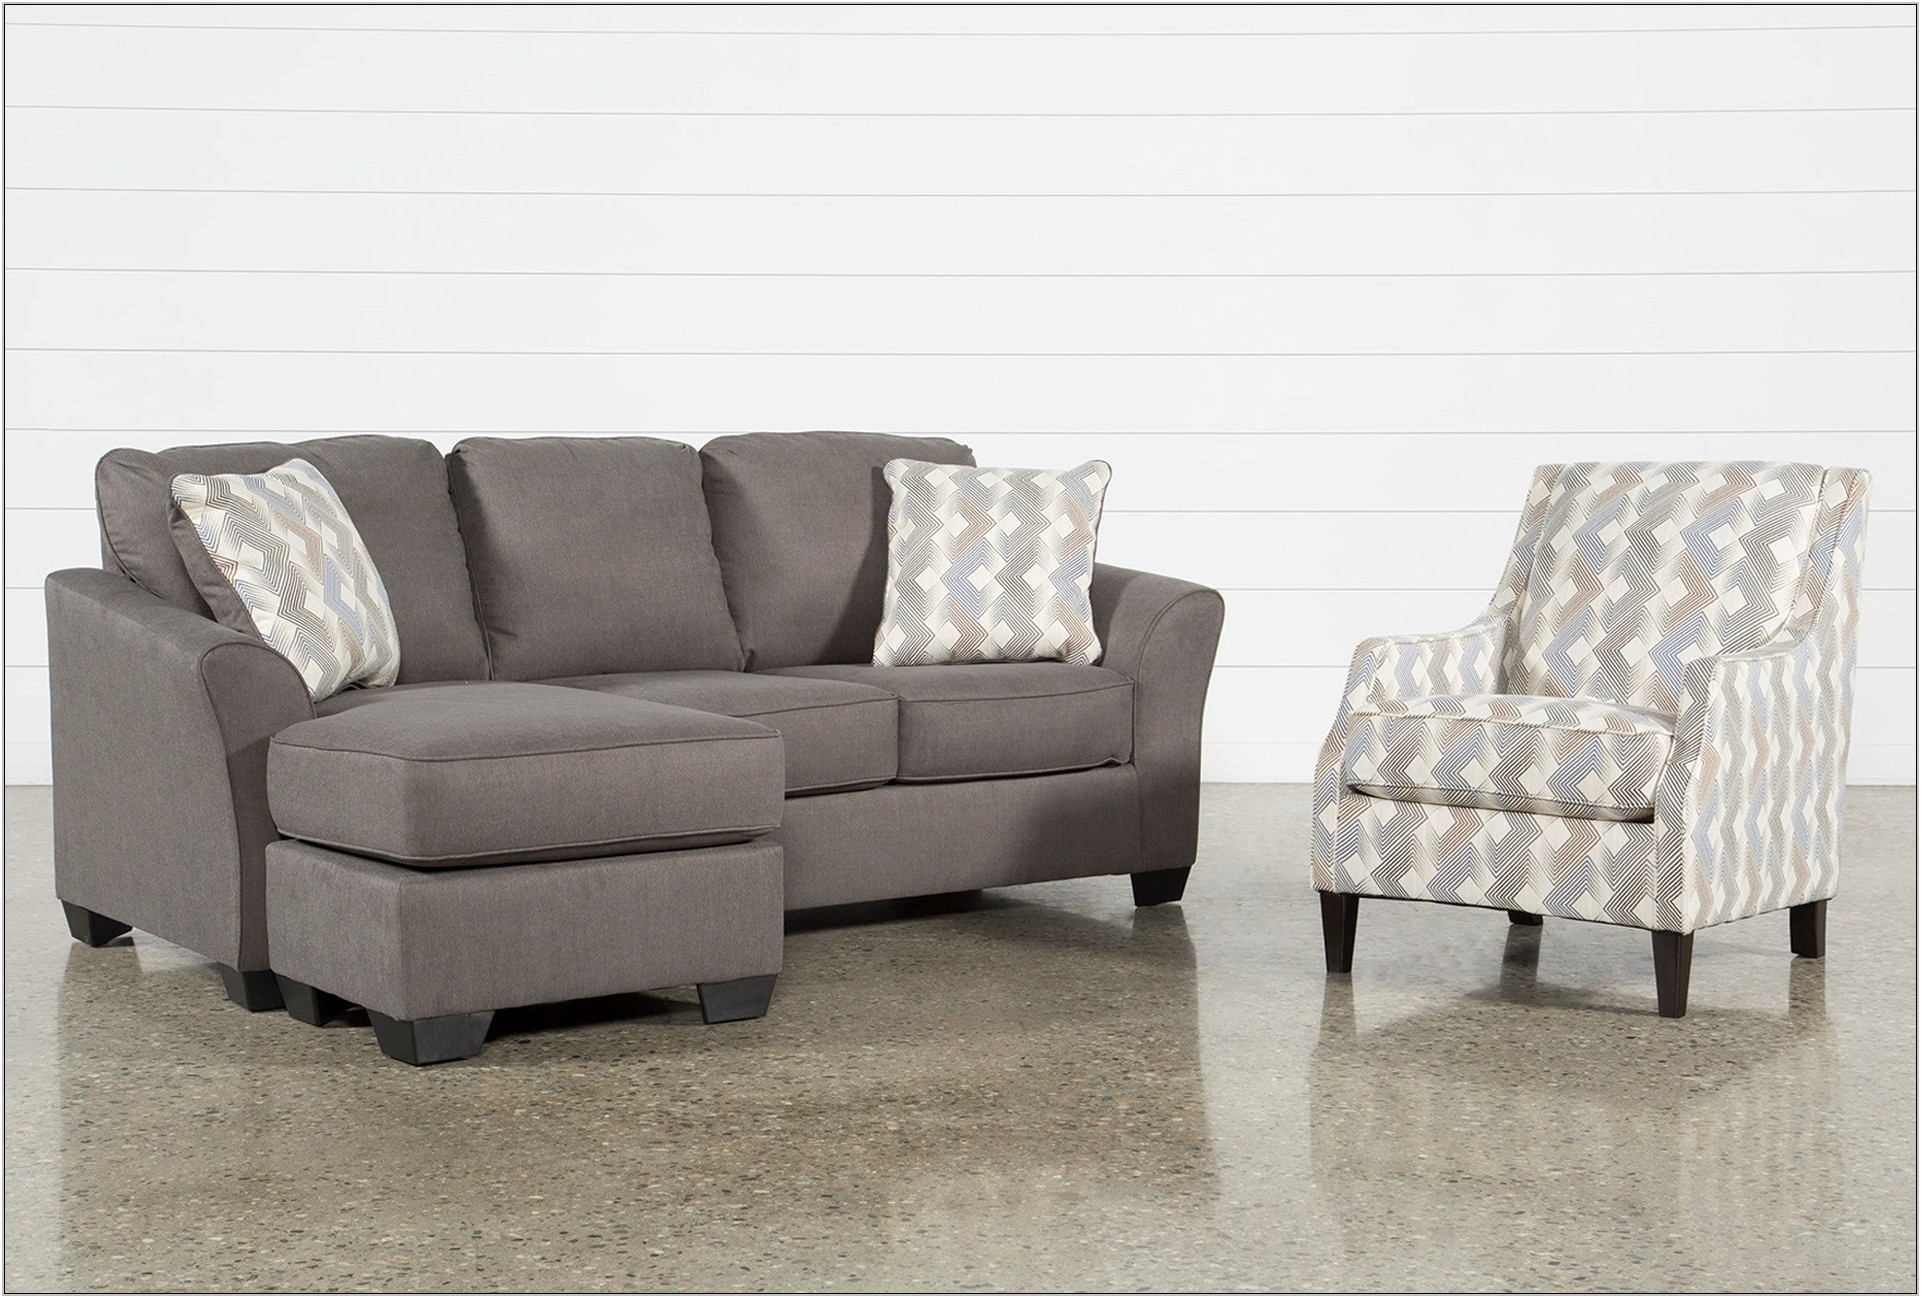 Grey Living Room Sets On Sale